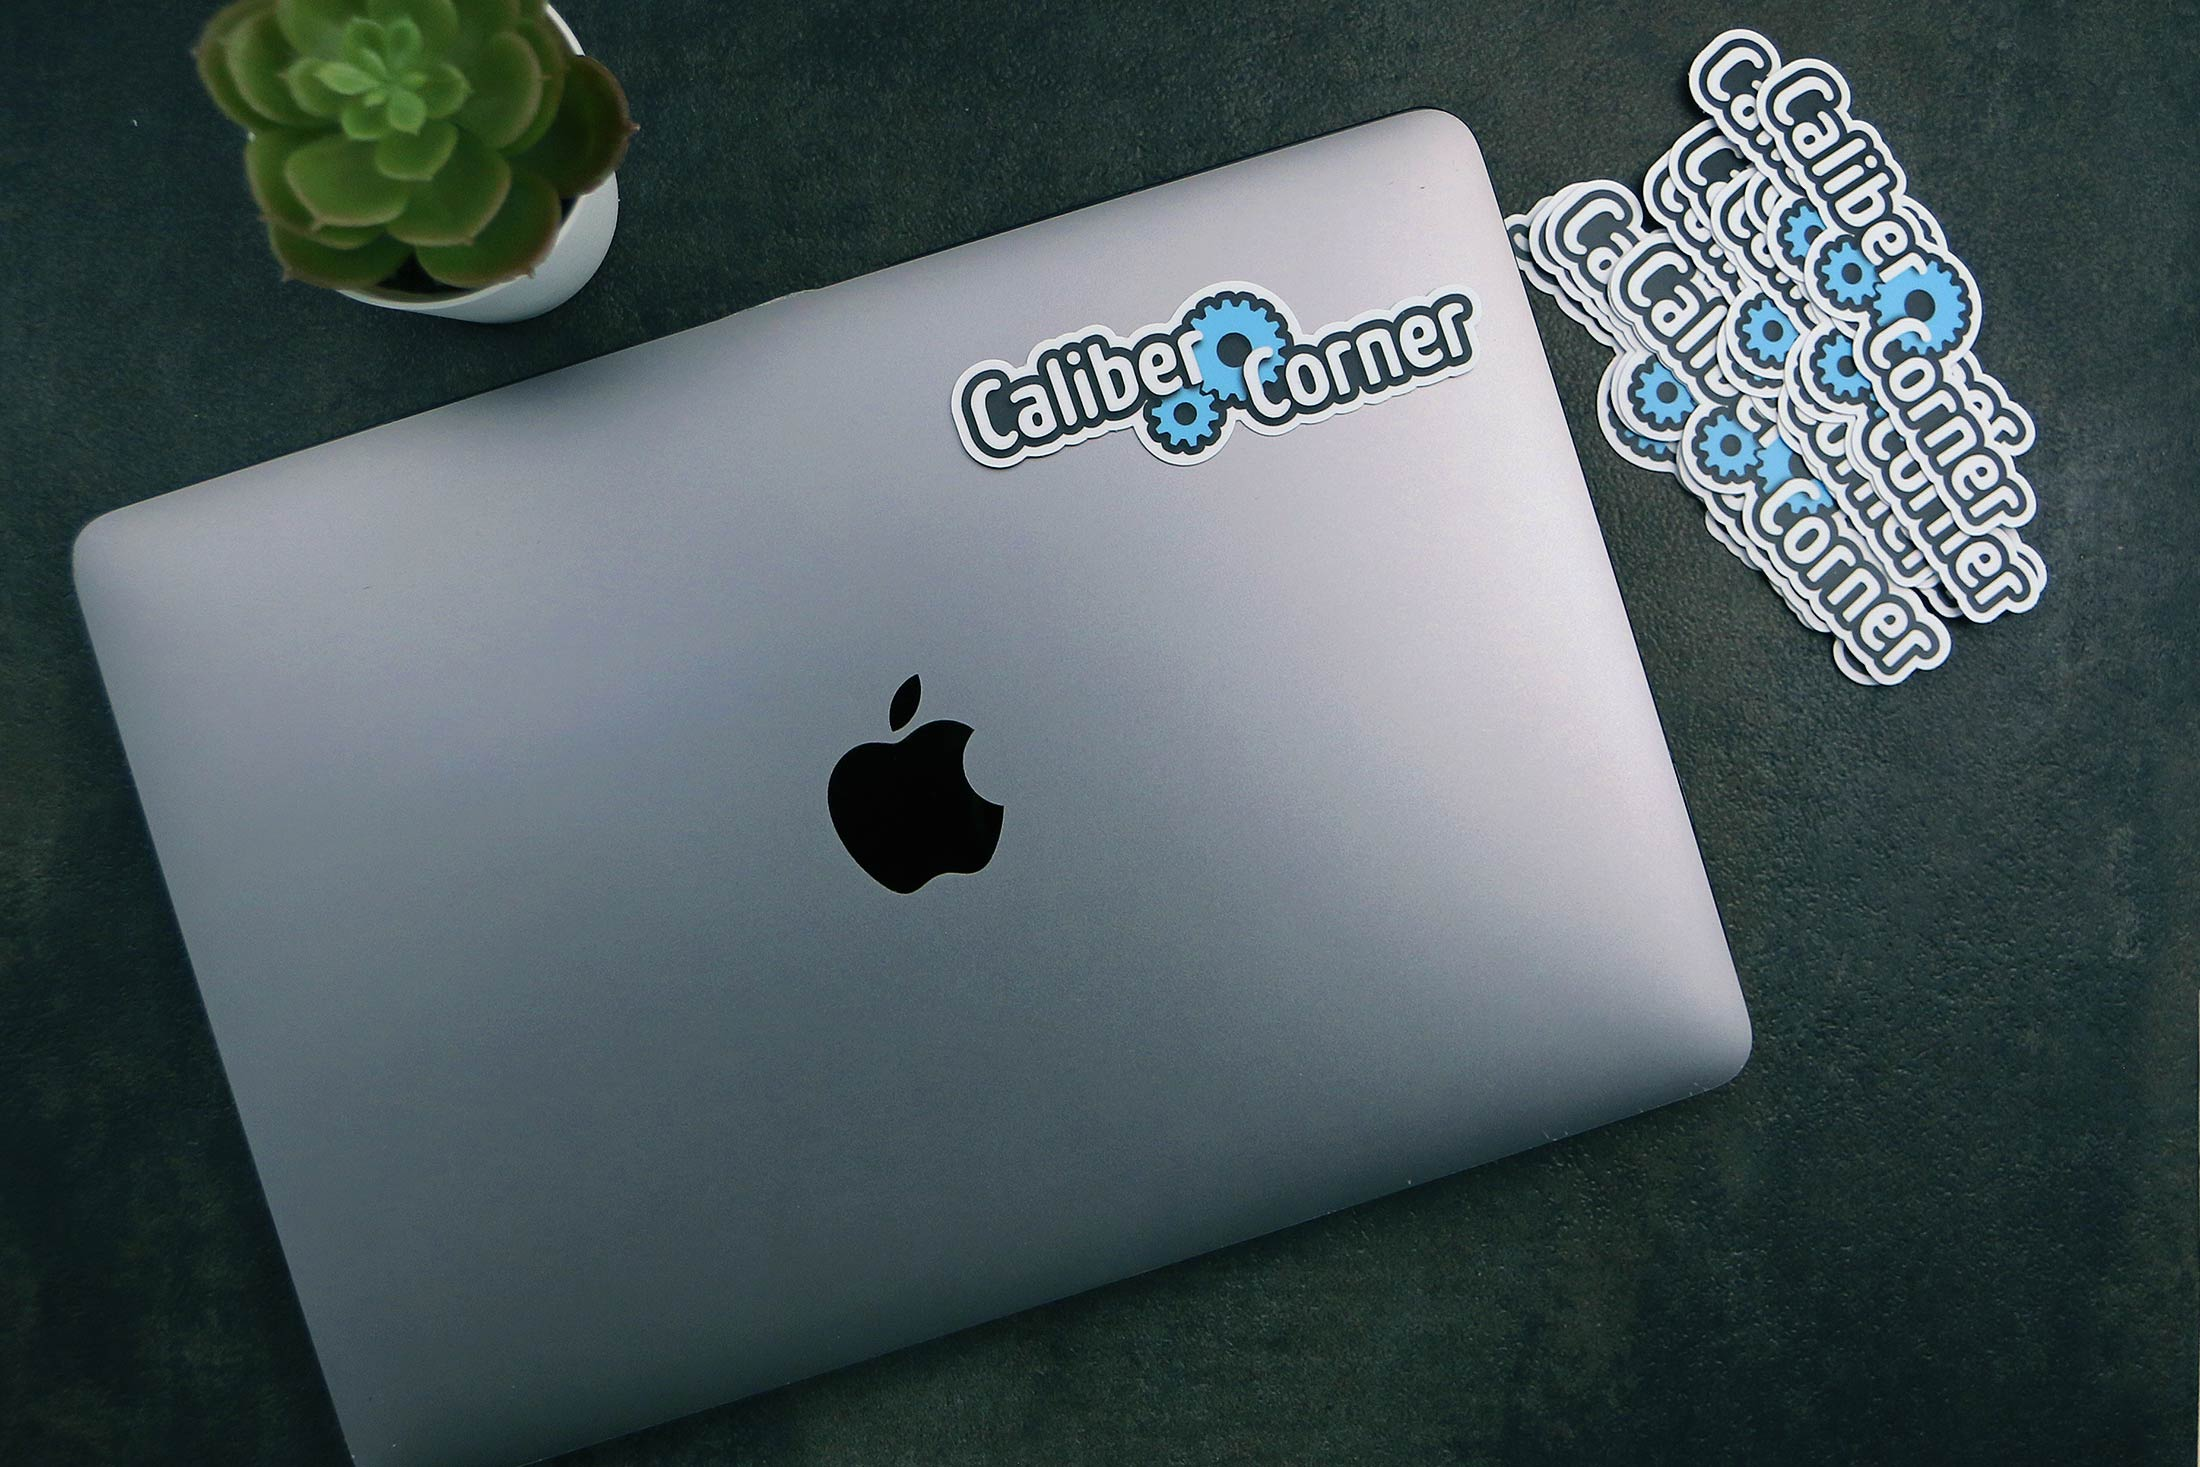 Caliber Corner Sticker V1 12 Macbook